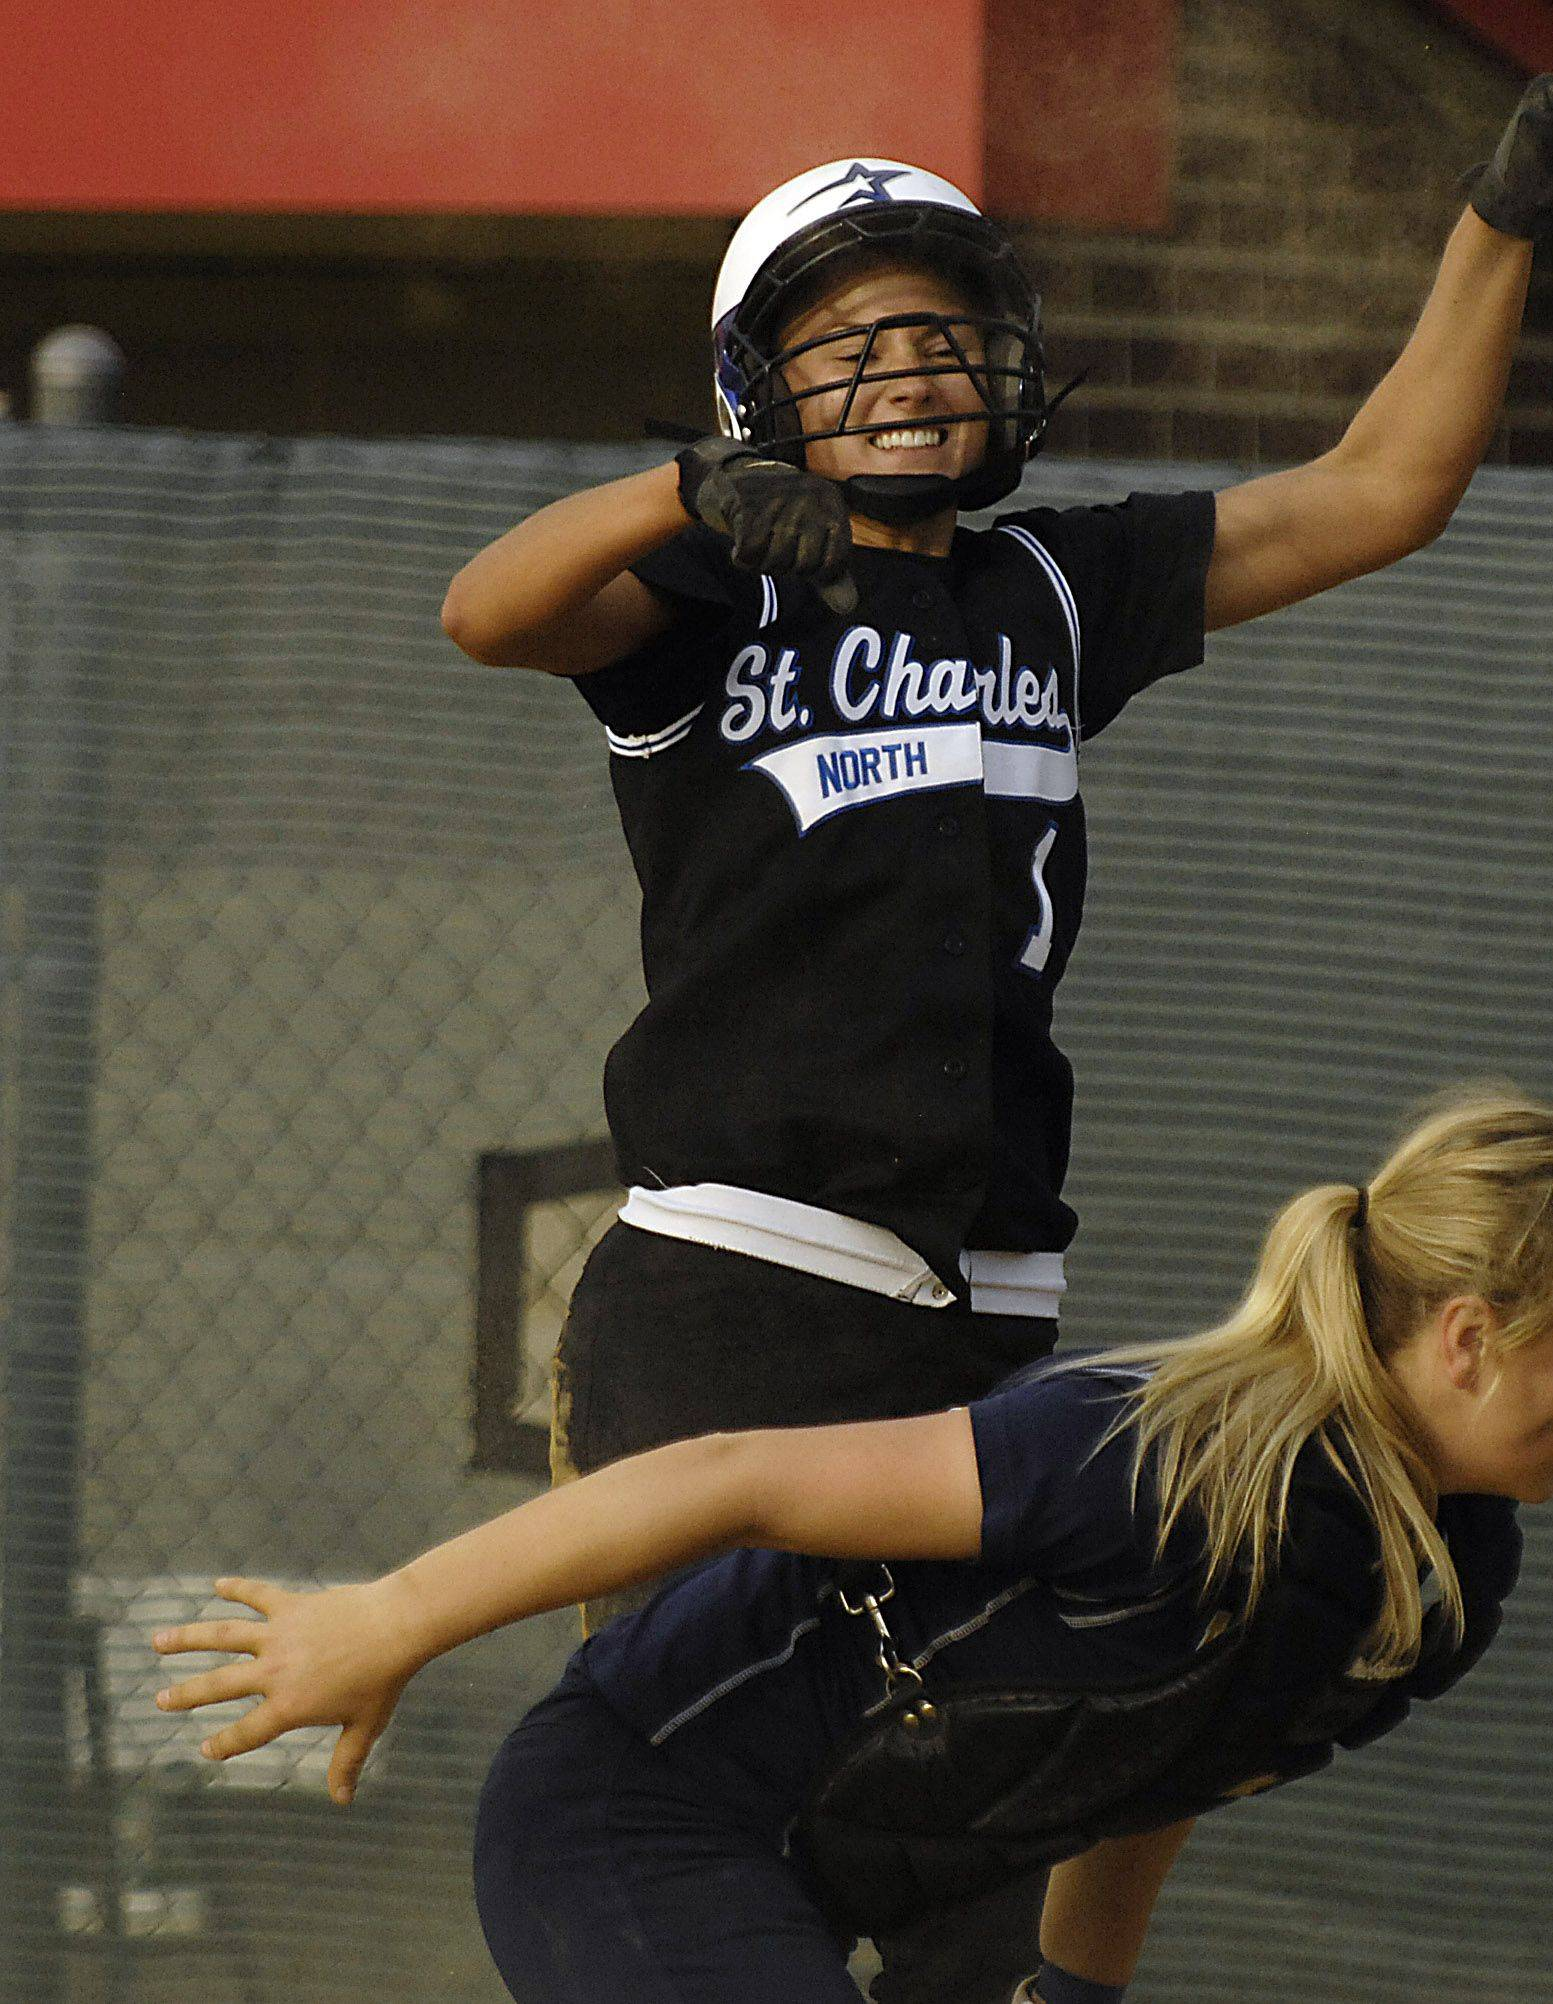 St. Charles North's Loren Cihlar jumps up after scoring the winning run in the bottom of the 10th inning against Leyden in the sectional semifinal game Thursday in Schaumburg.